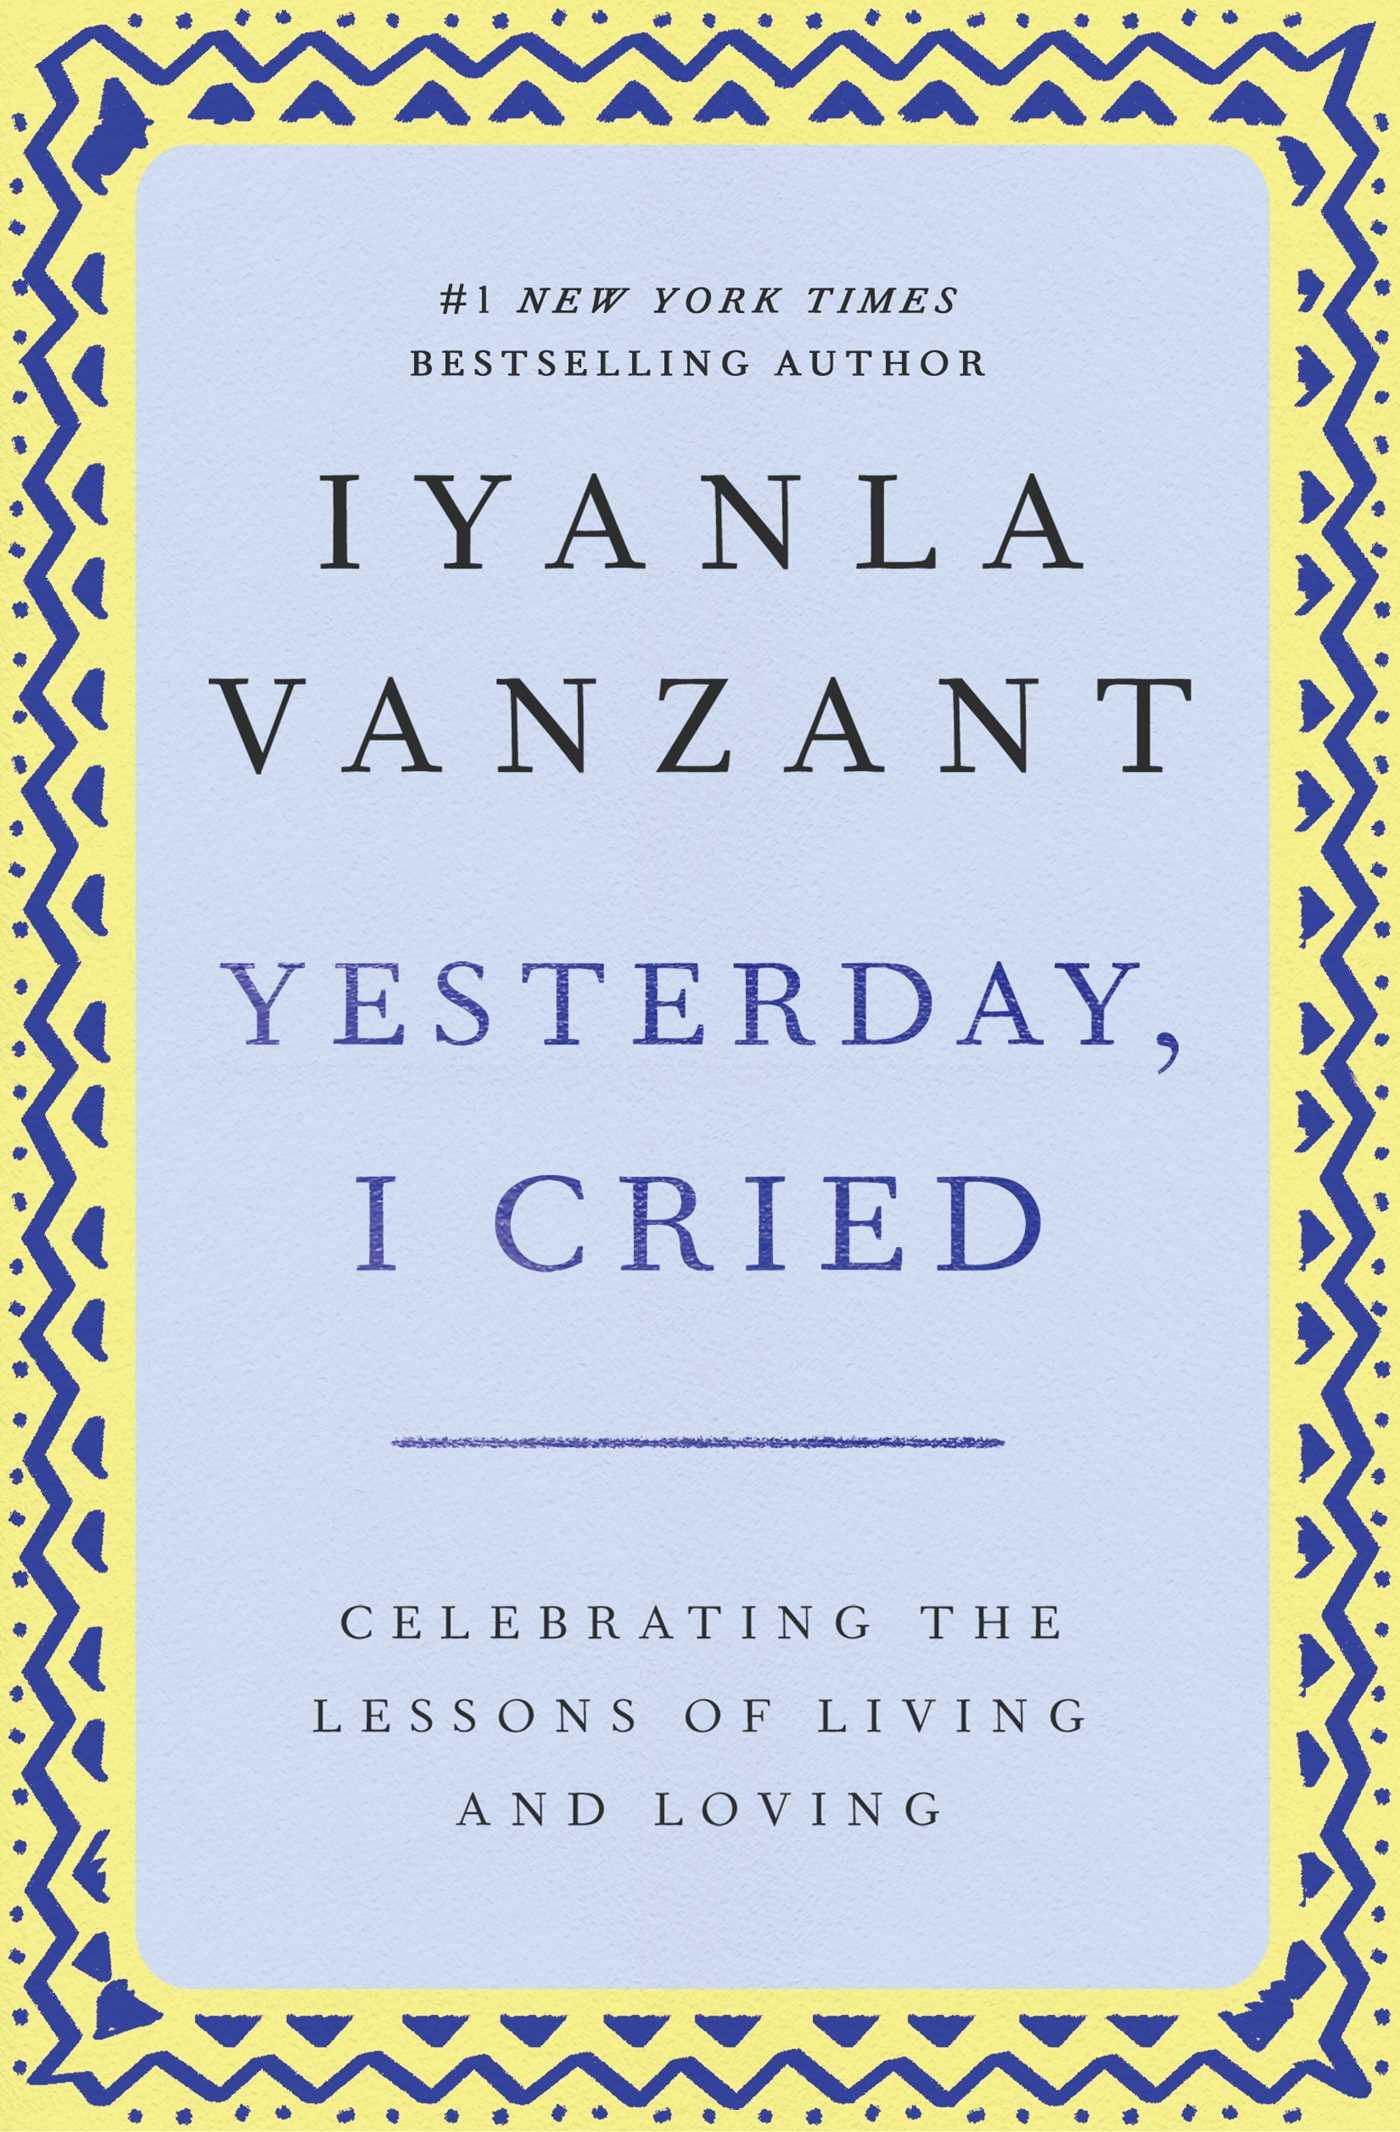 Yesterday, I Cried | Book by Iyanla Vanzant | Official Publisher ...